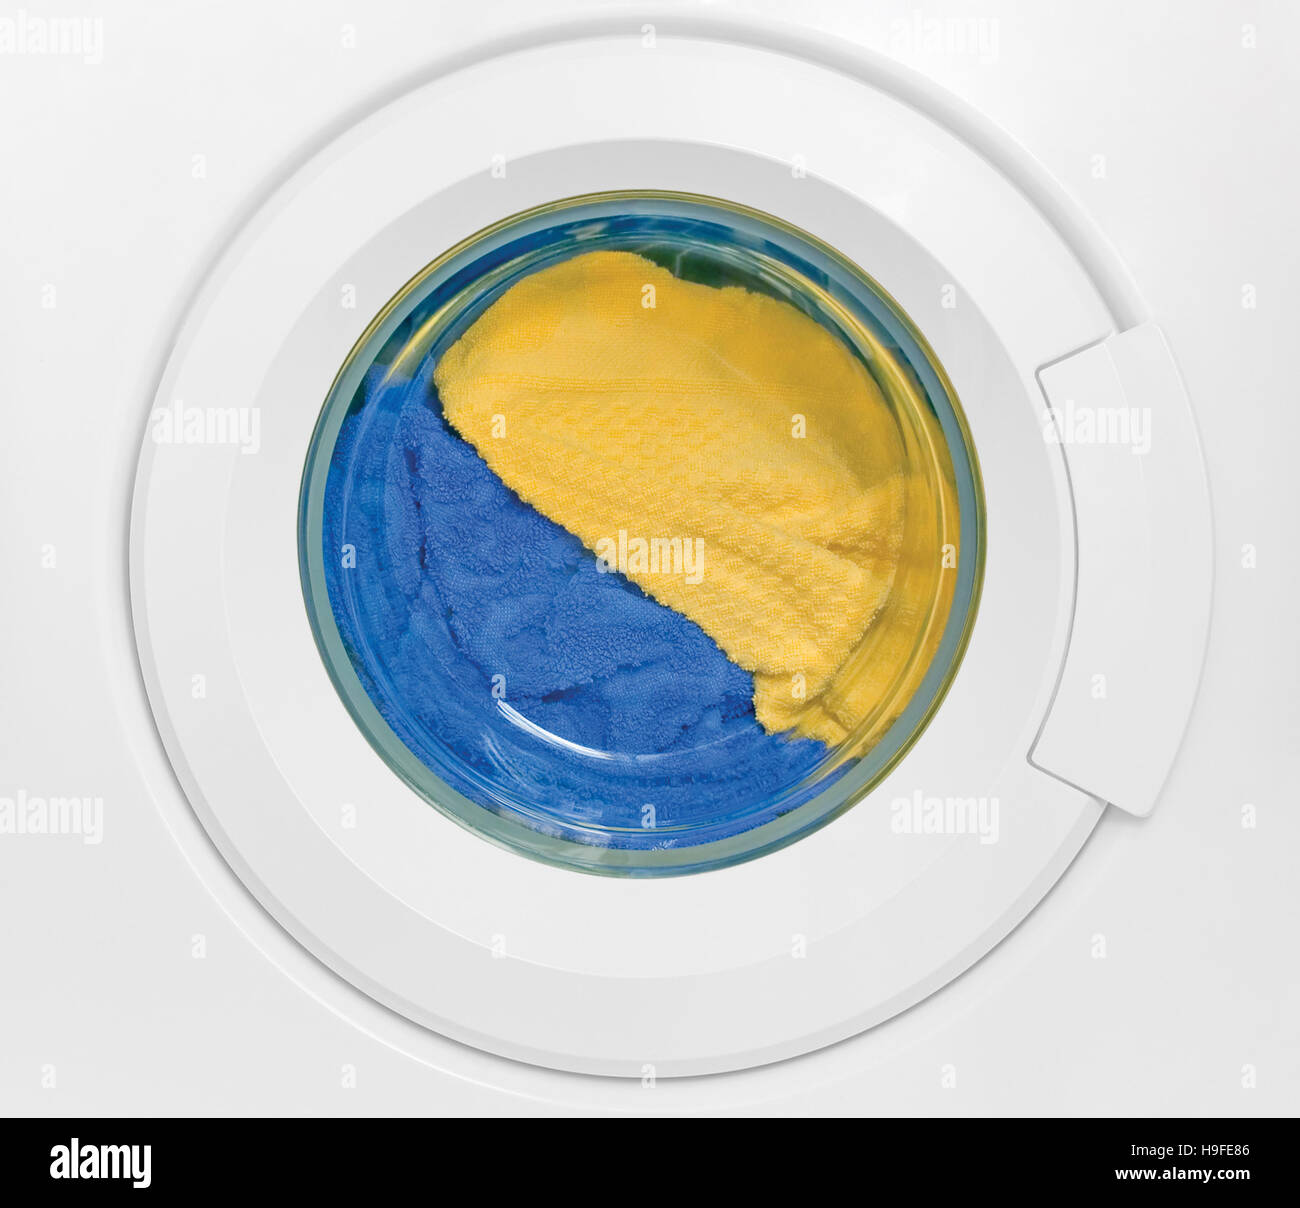 how to clean front loading washing machine with white vinegar